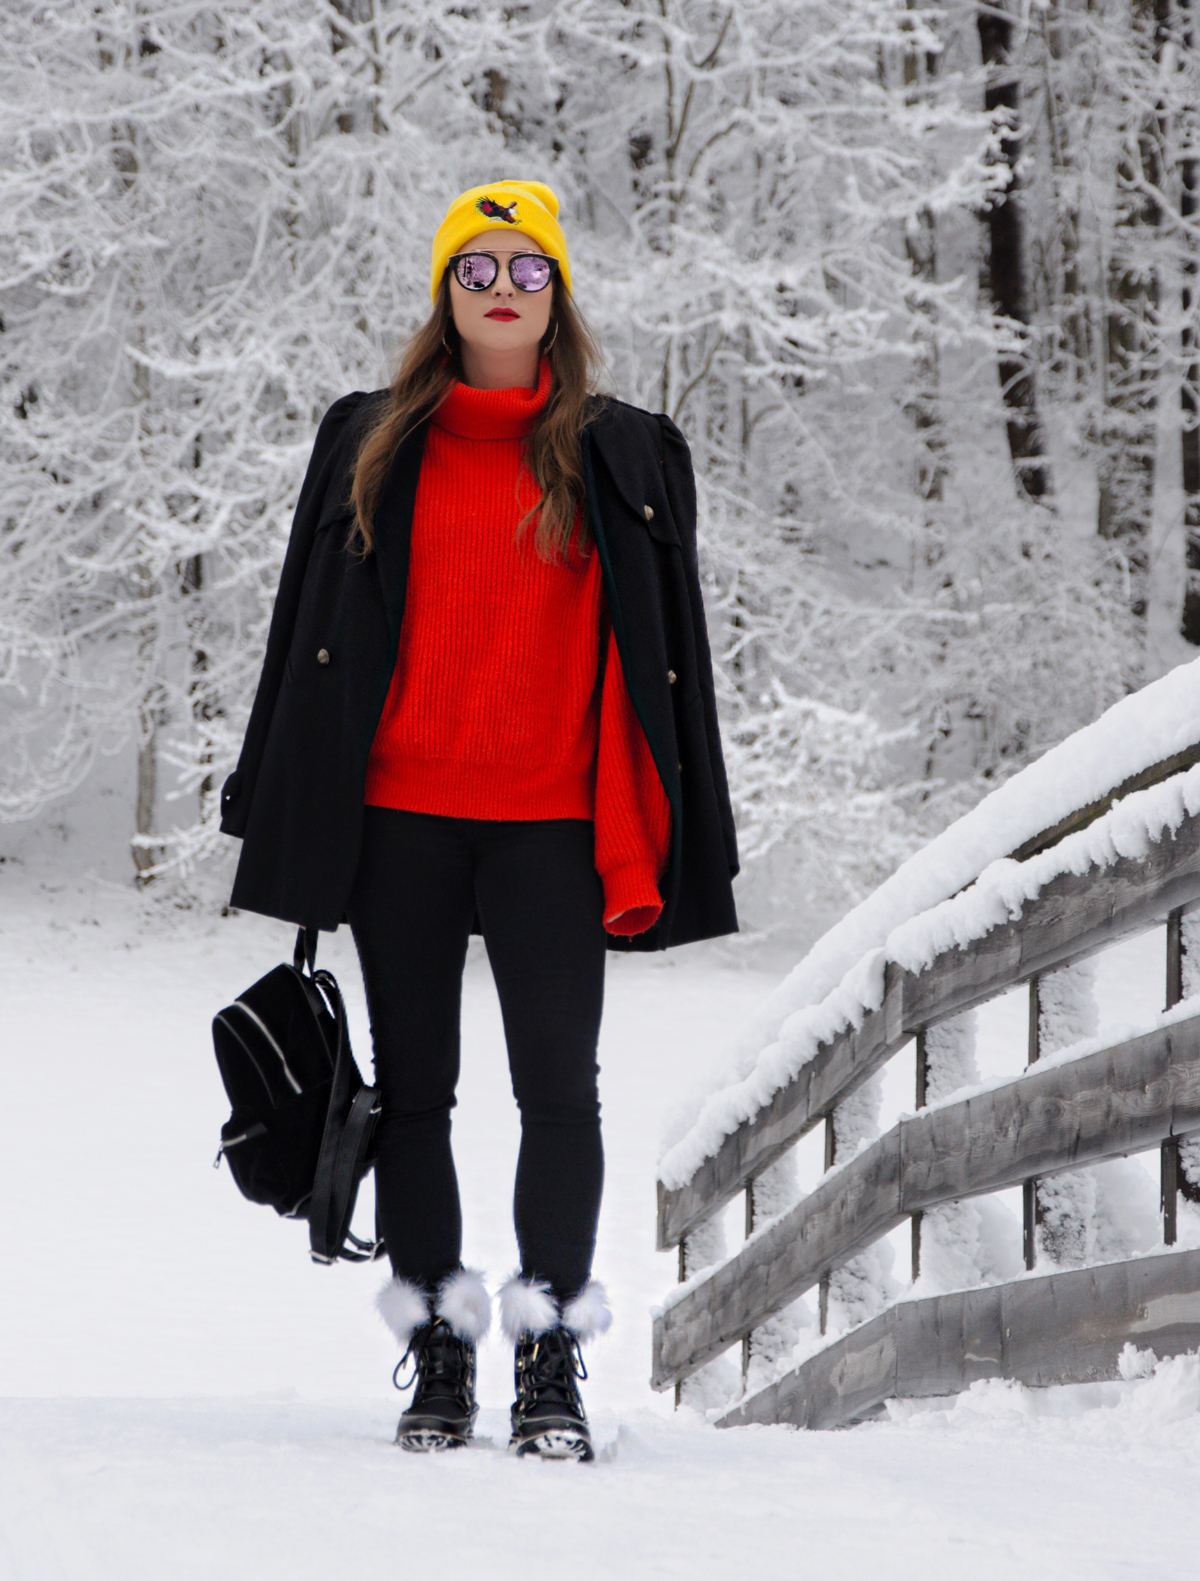 Swiss blogger for fashion Andrea Steiner from Strawberries 'n' Champagne wear new Sorel Boots for Winter in beautiful Engelberg.